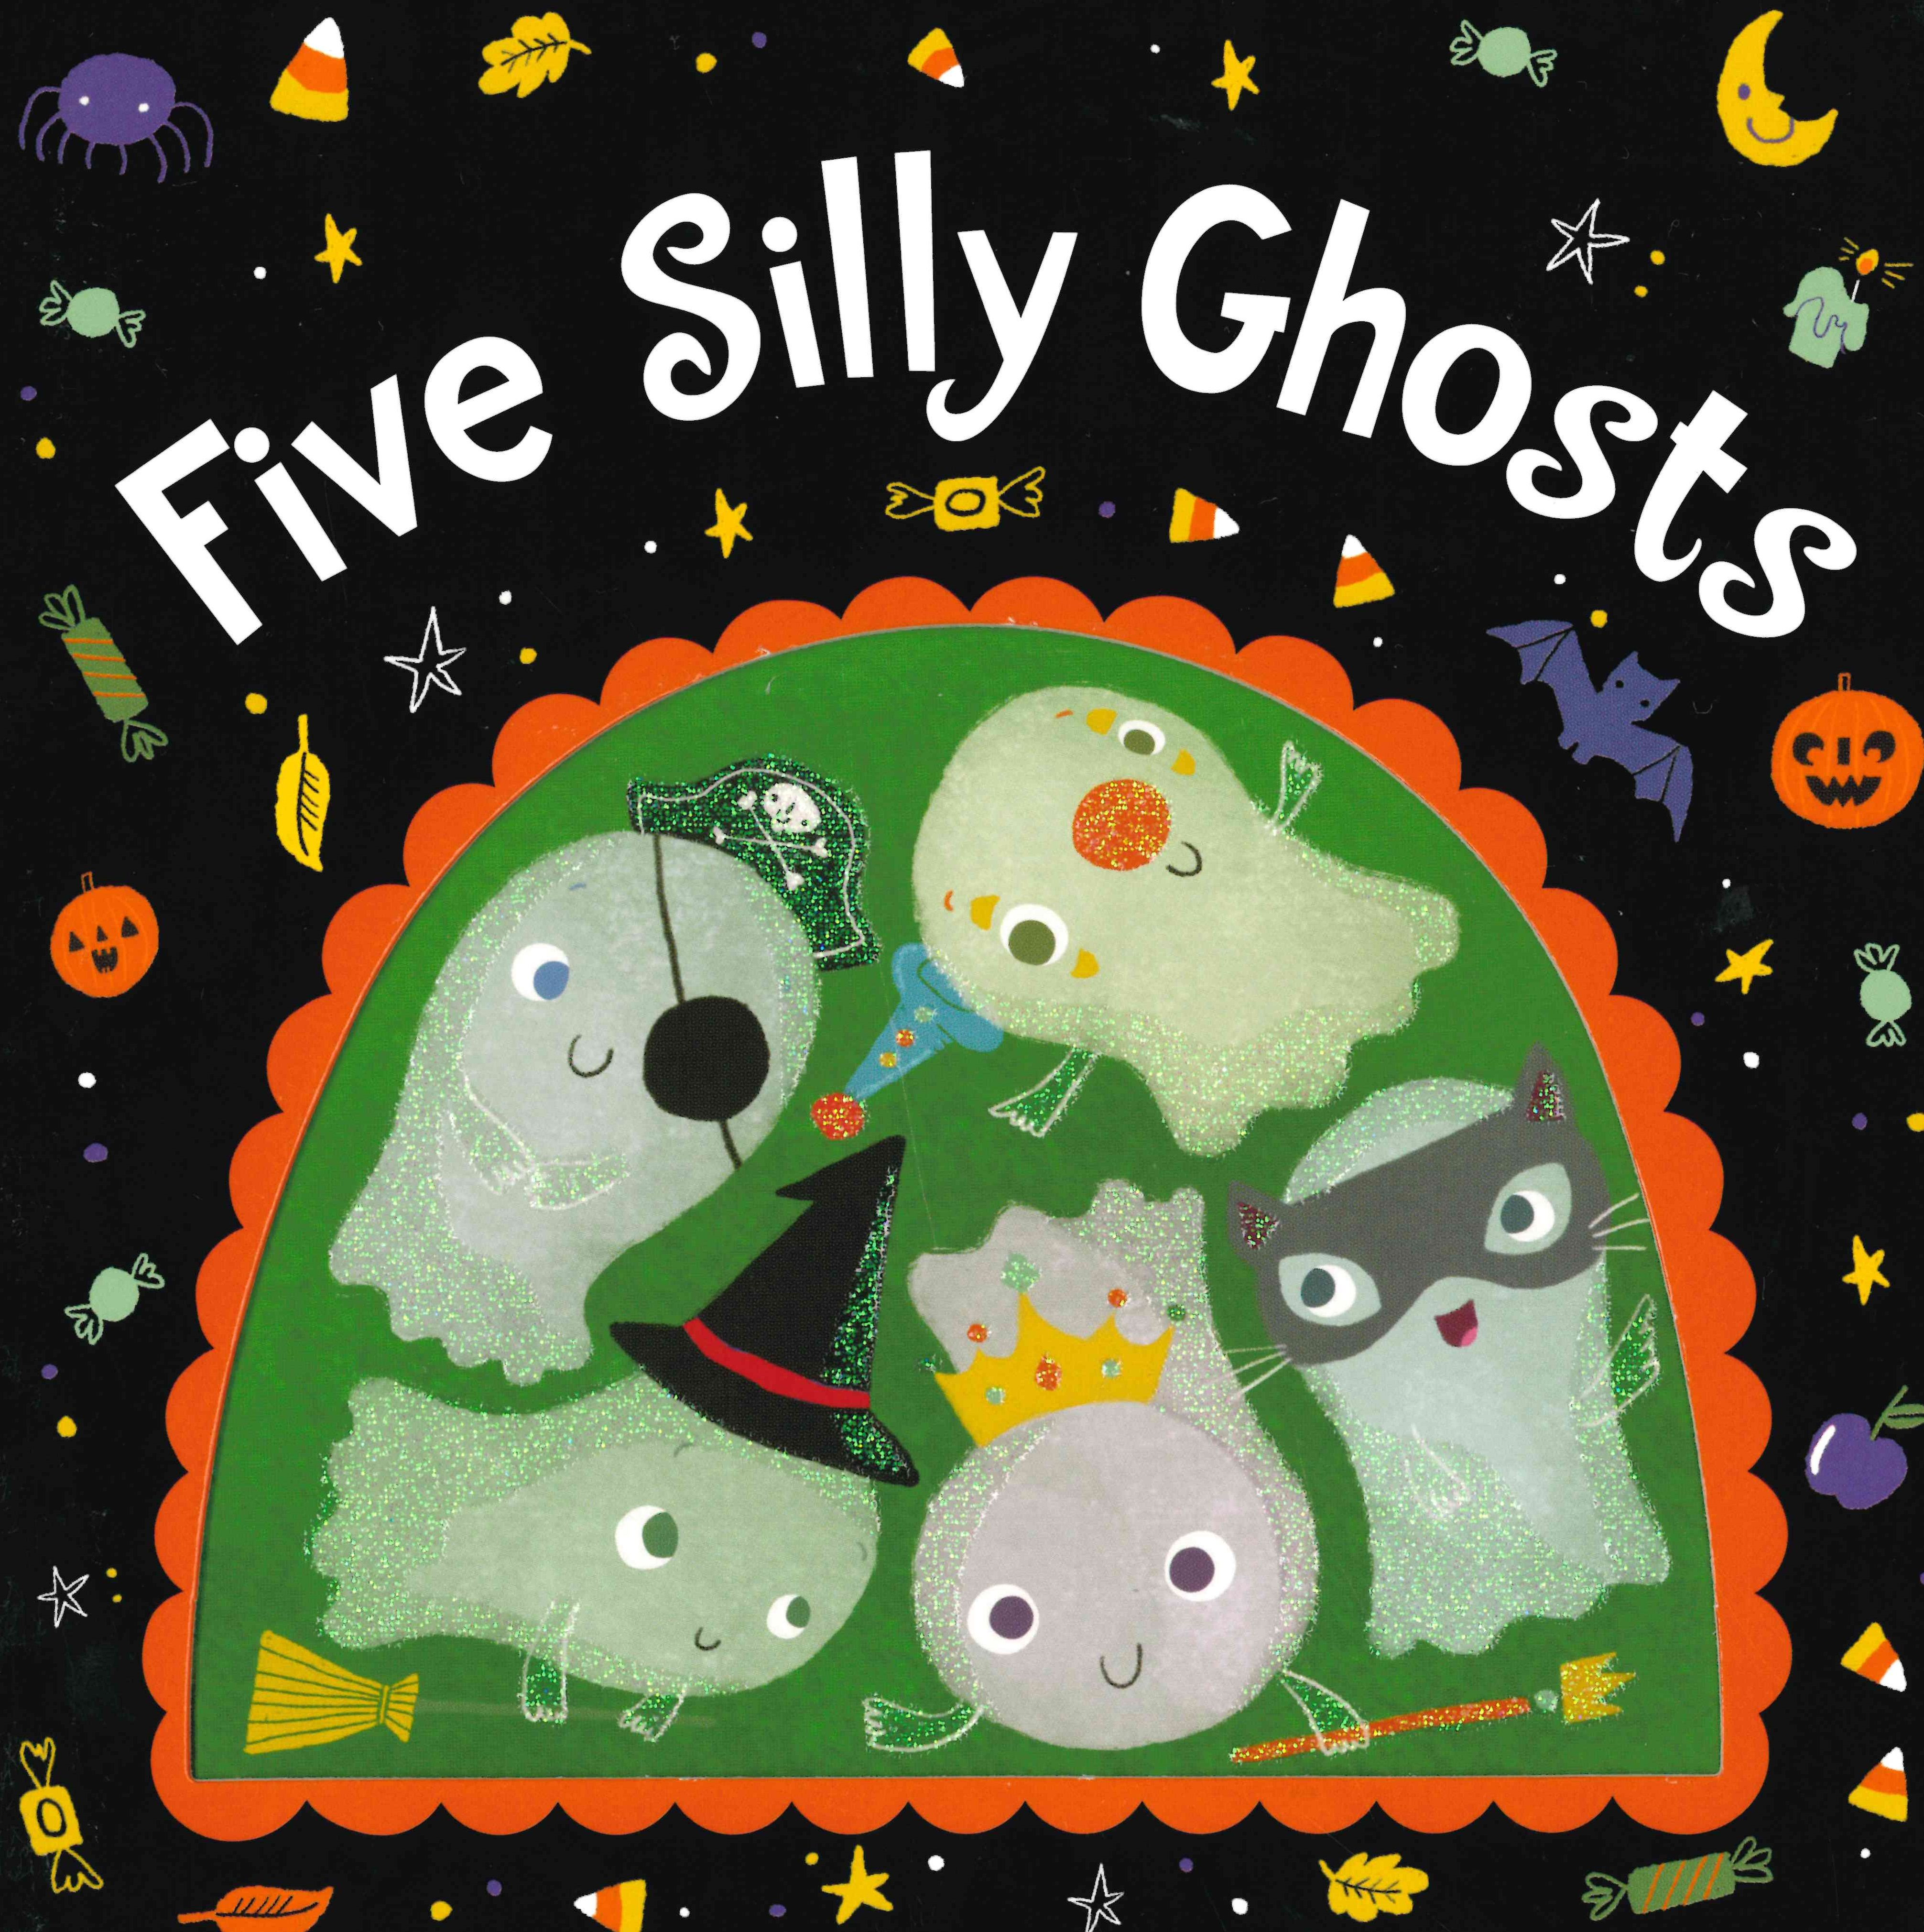 2020 Halloween Classic At The Gate Photos Five Silly Ghosts (Board Book) in 2020 | Halloween books for kids